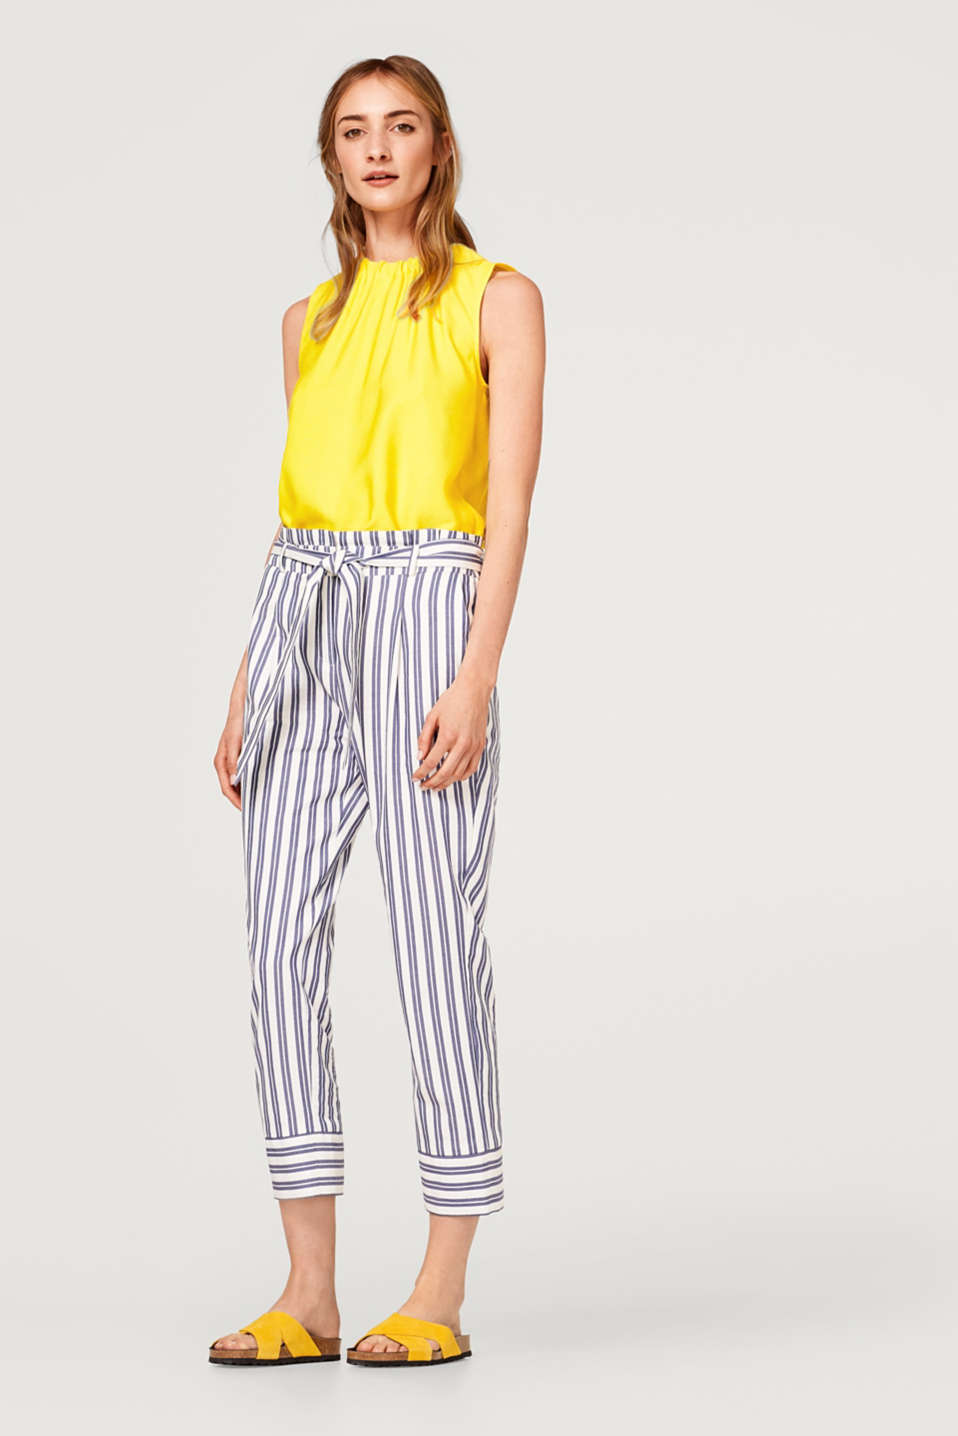 Esprit - Striped paperbag trousers, 100% cotton